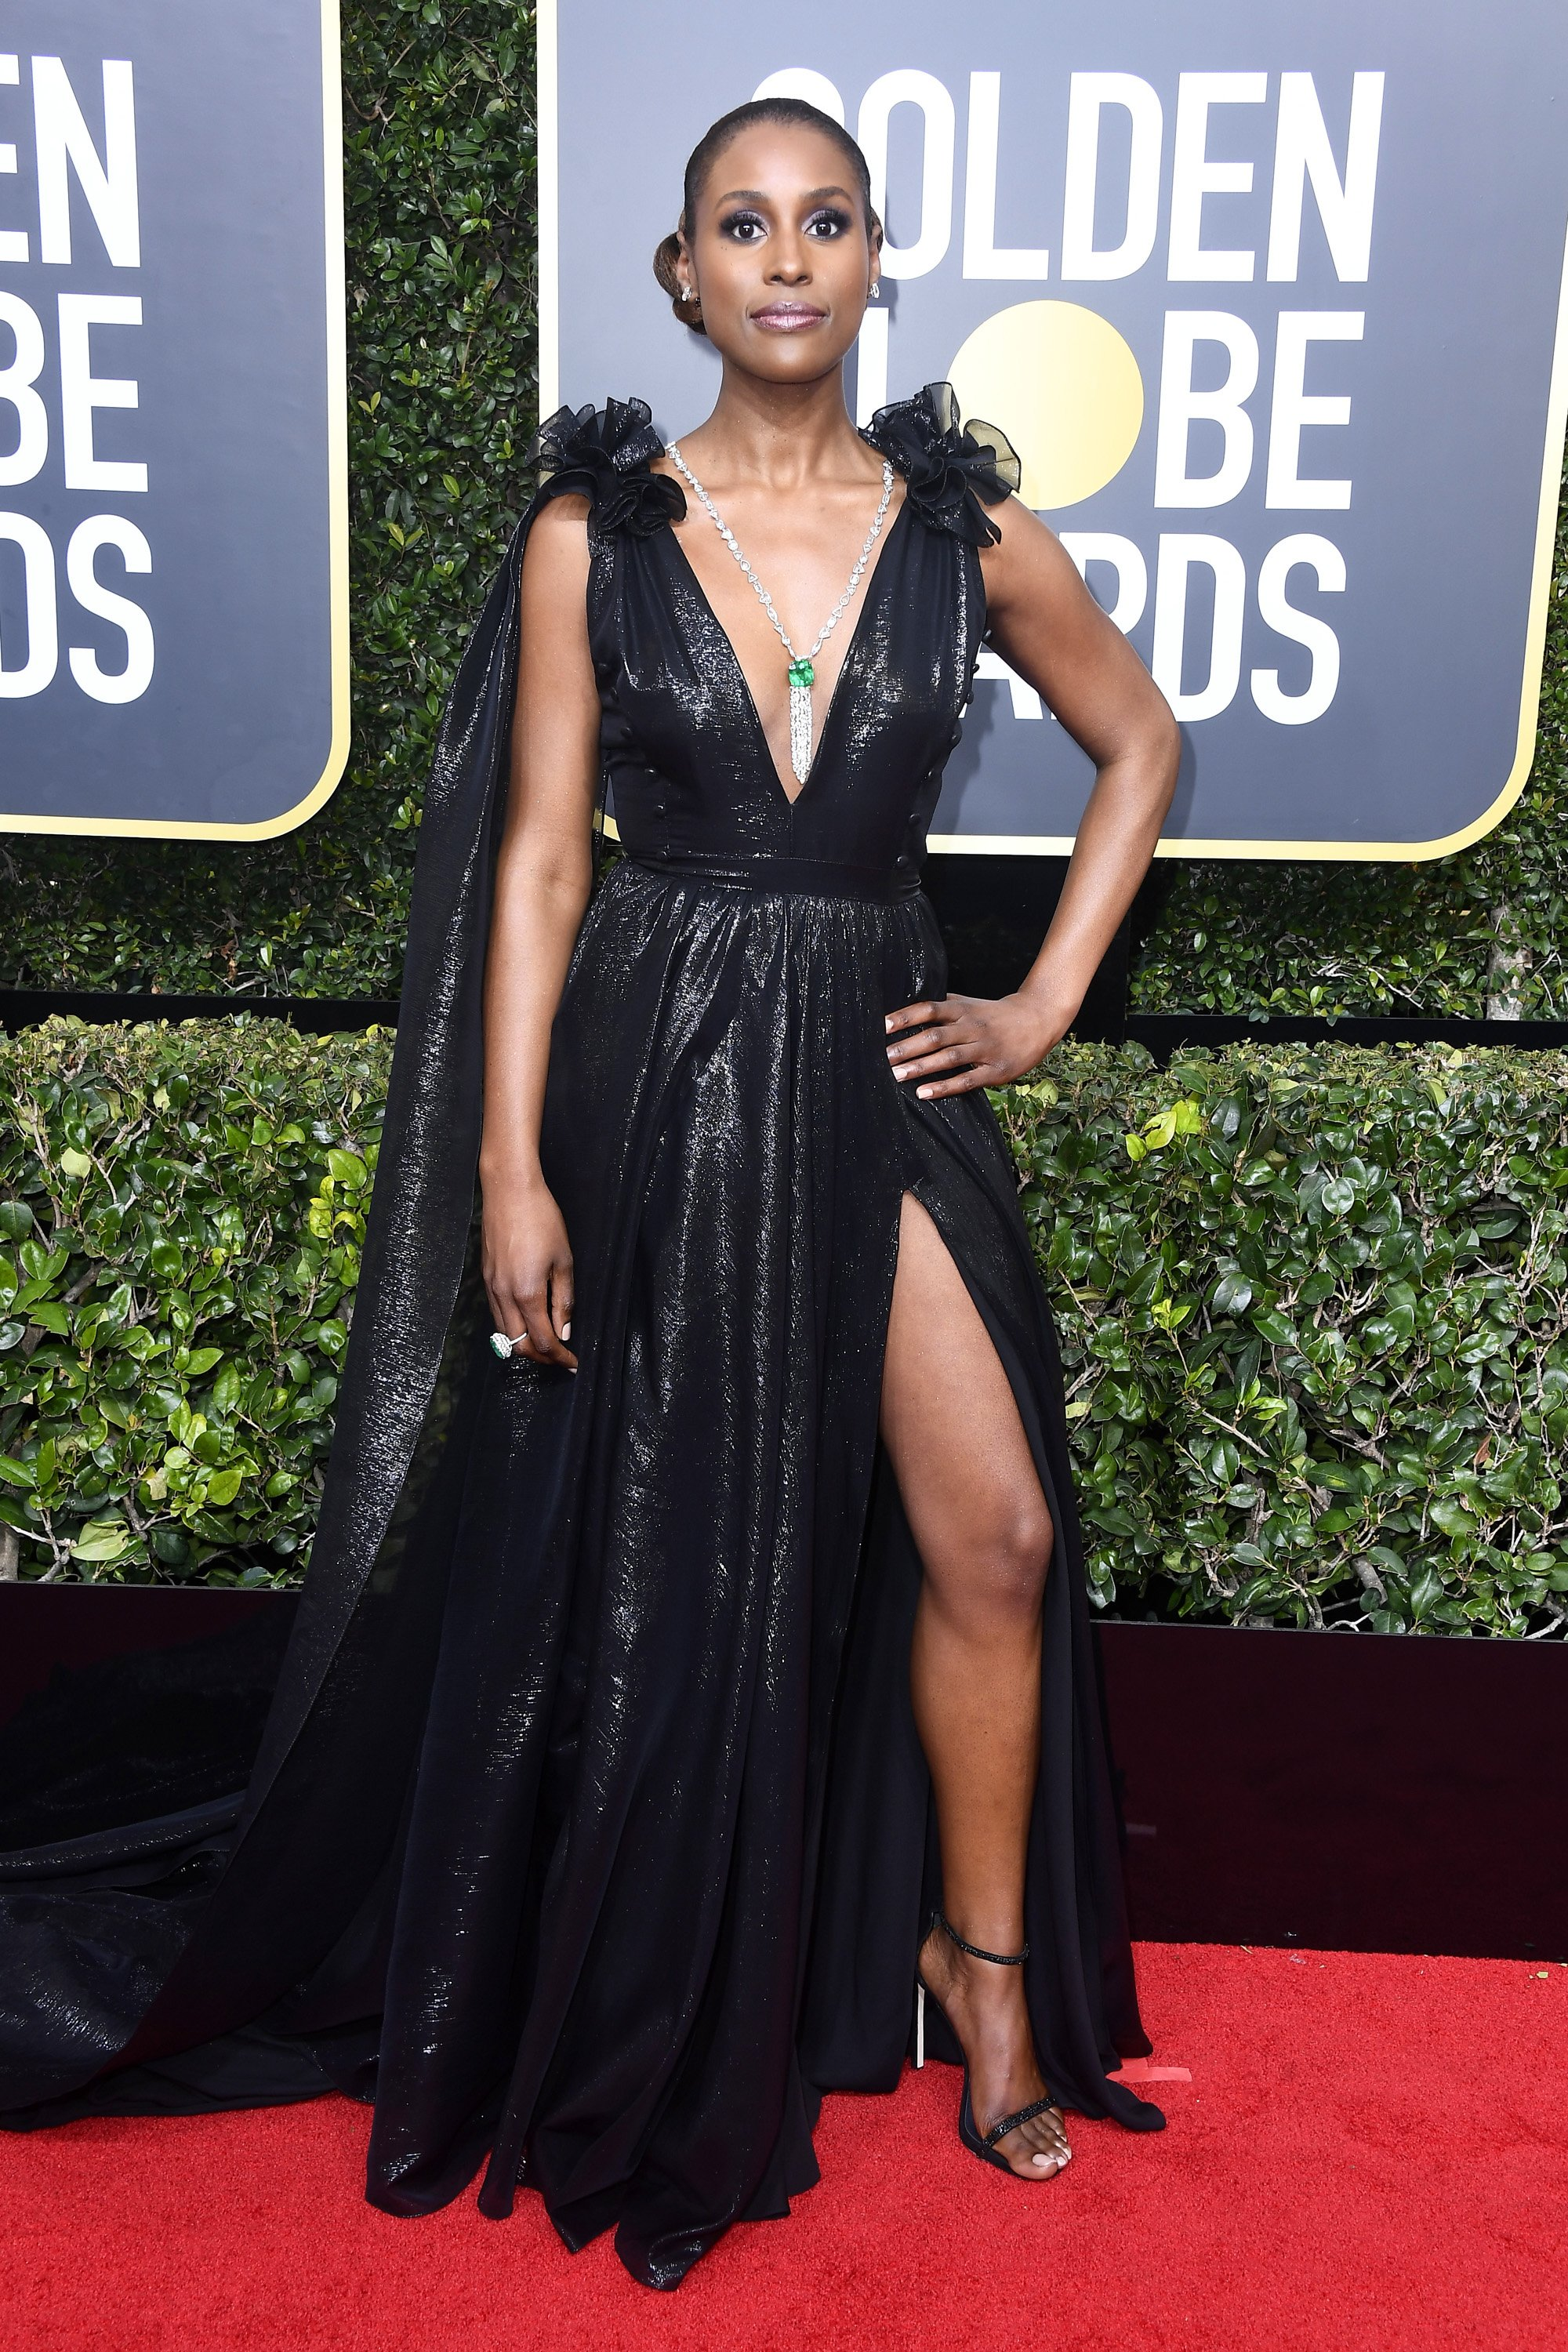 Issa Rae at the 75th Annual Golden Globe Awards on Jan. 7, 2018 in California | Photo: Getty Images